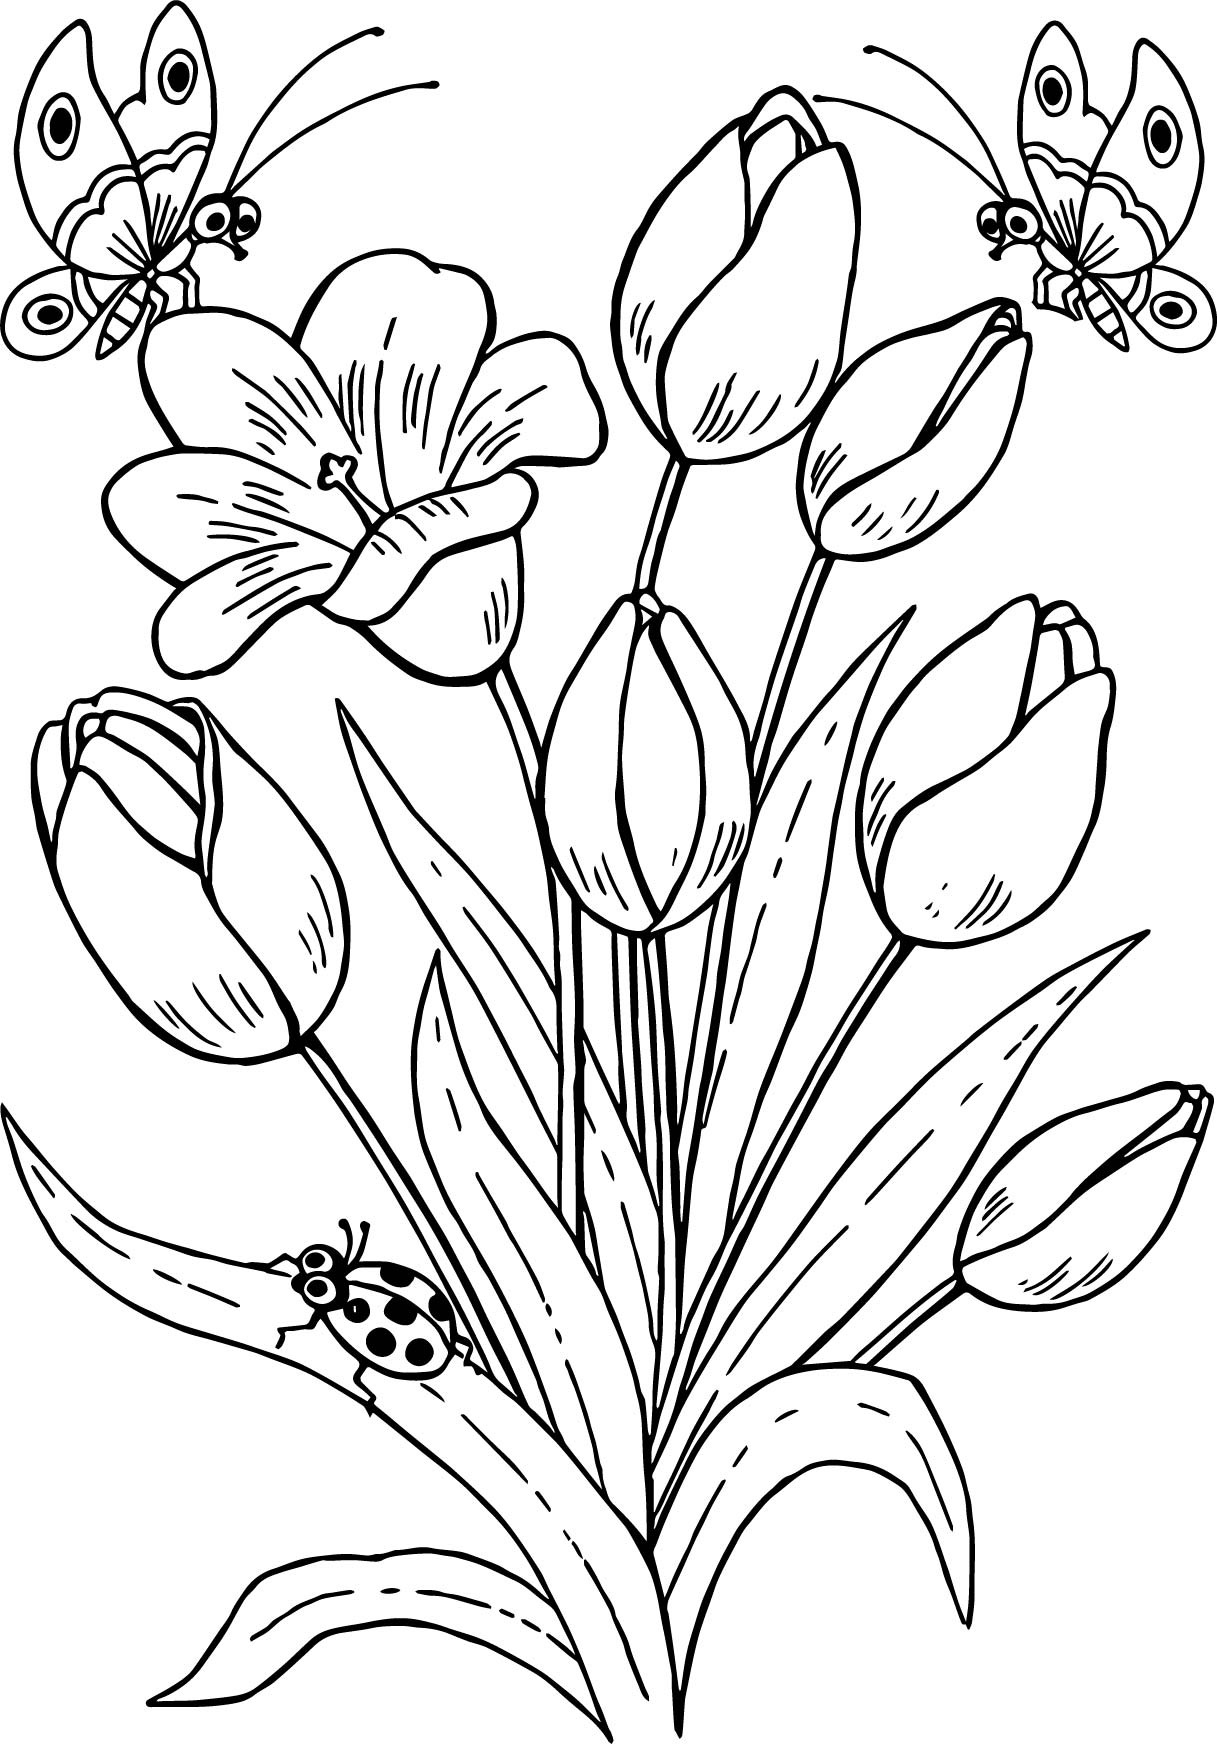 Drawing Butterfly Flowers Tulips Coloring Page